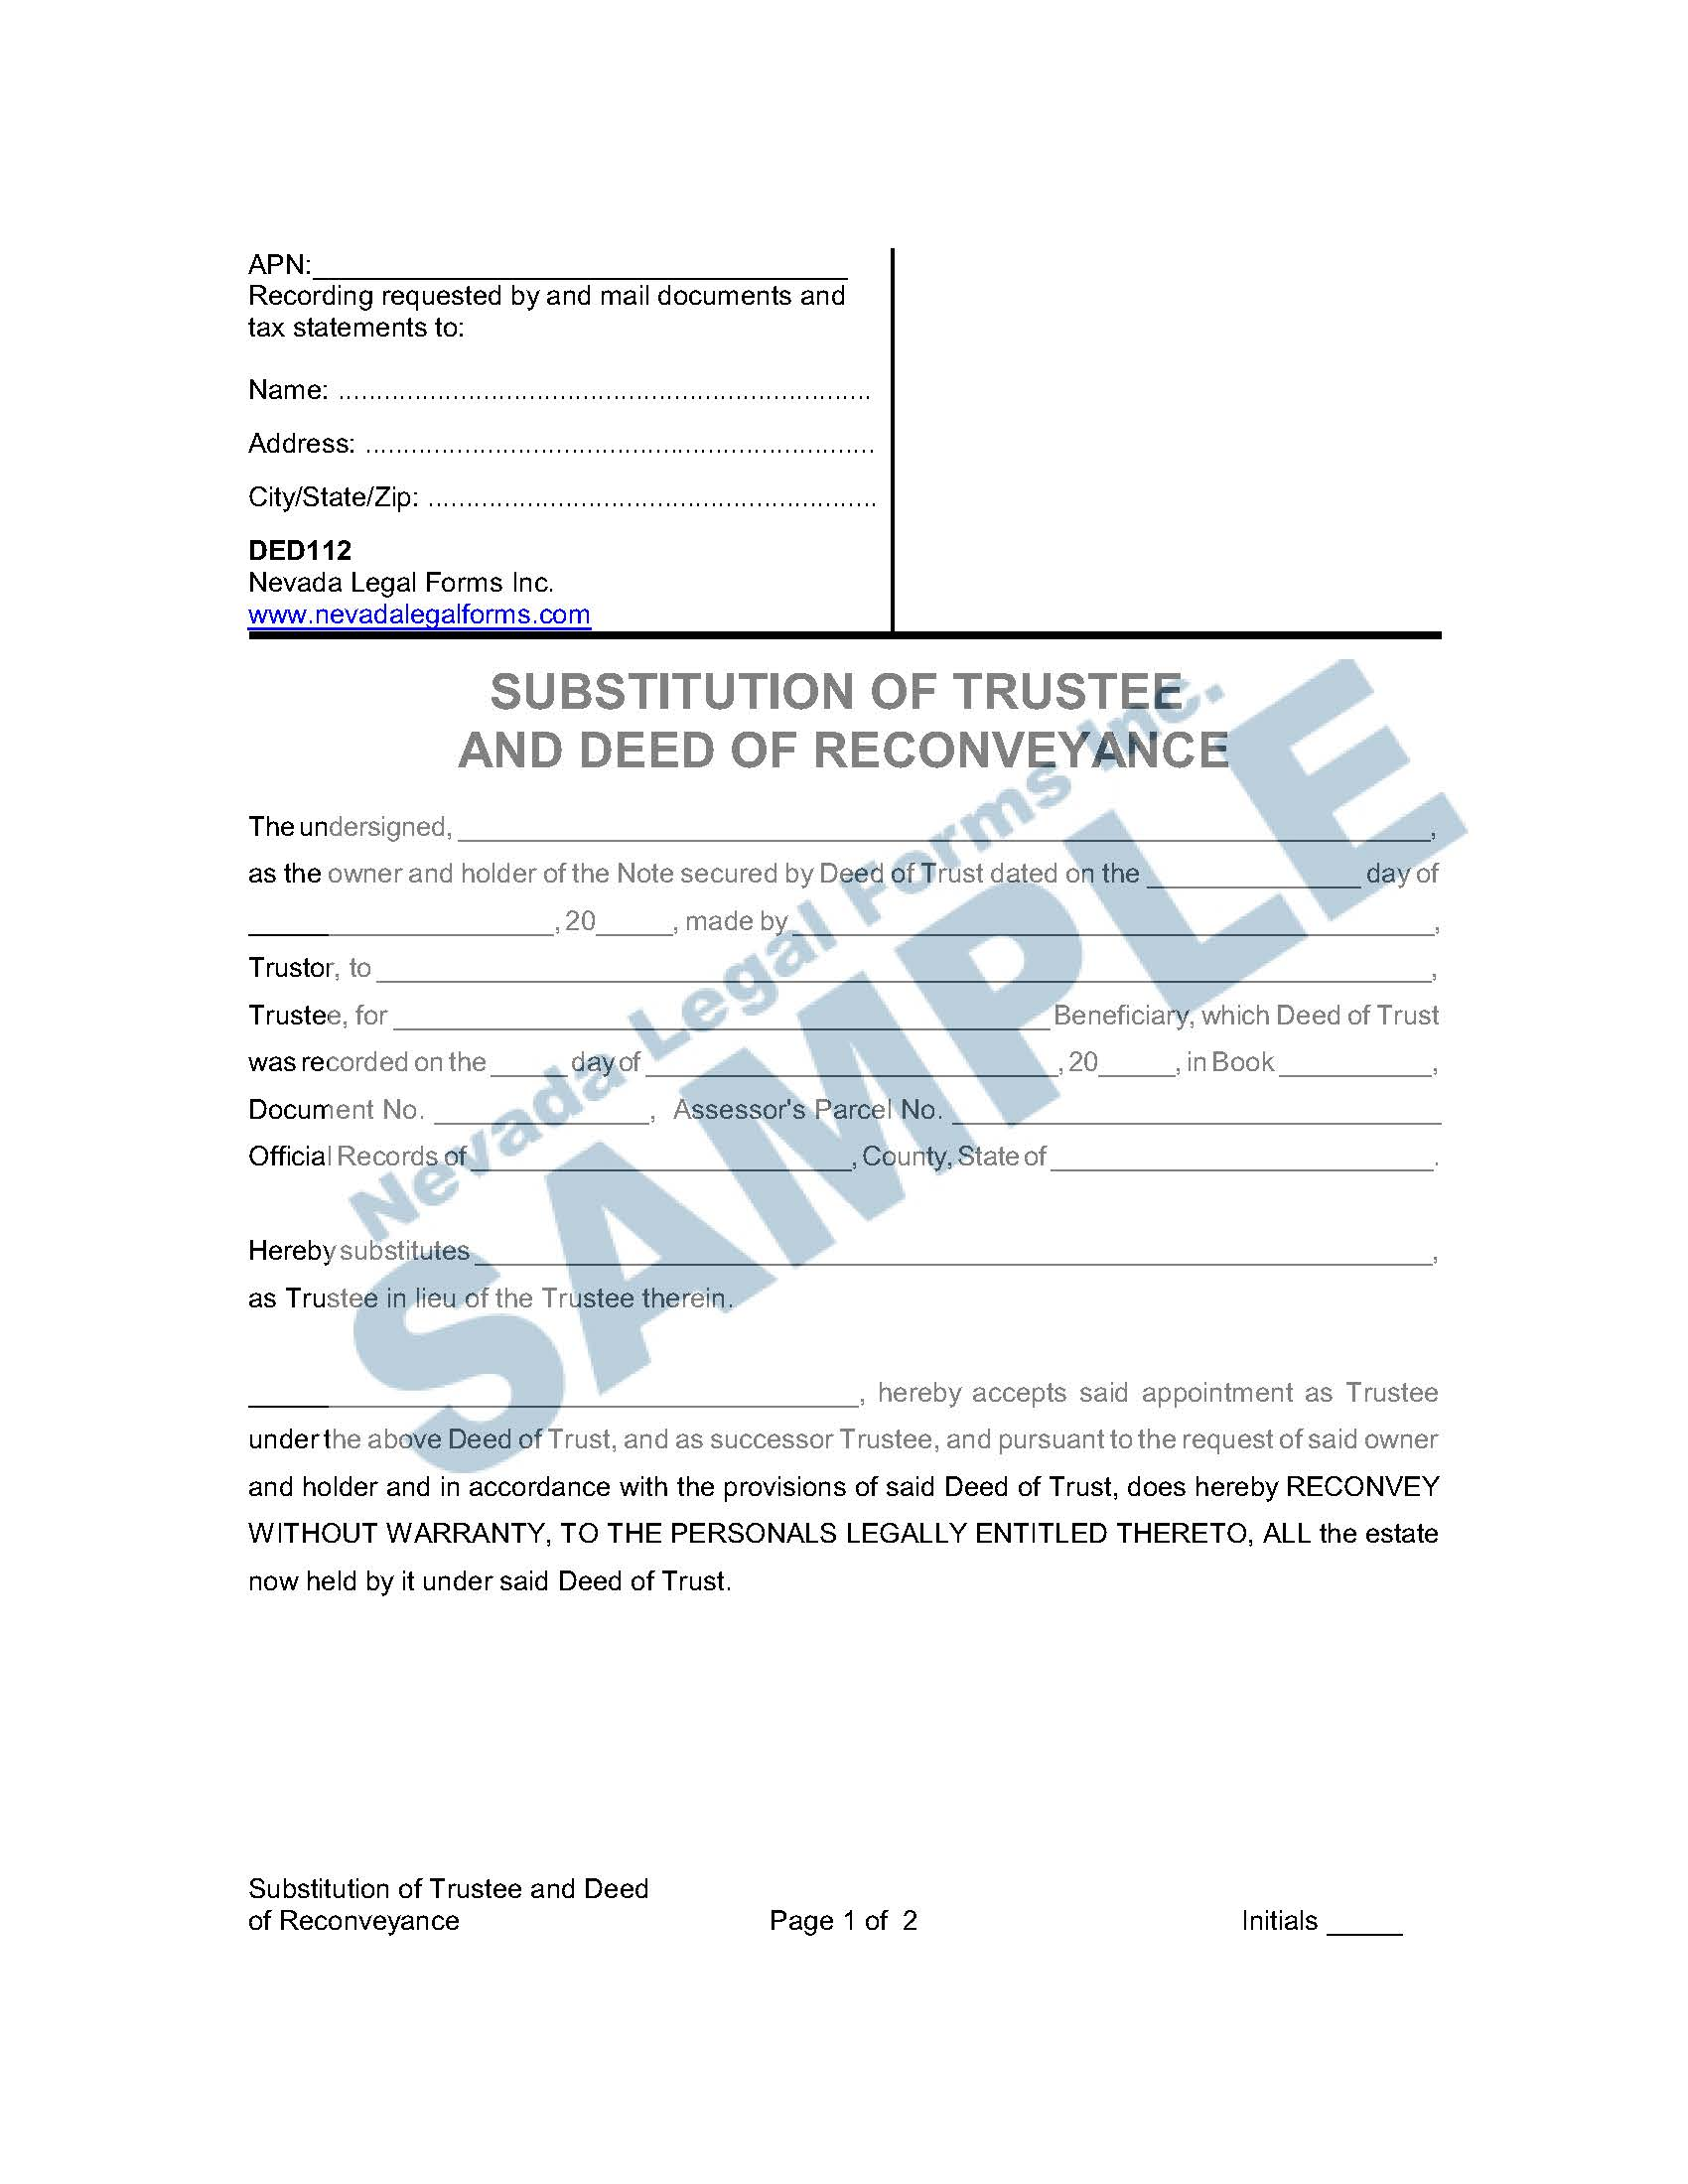 Substitution Of Trustee And Deed Of Reconveyance